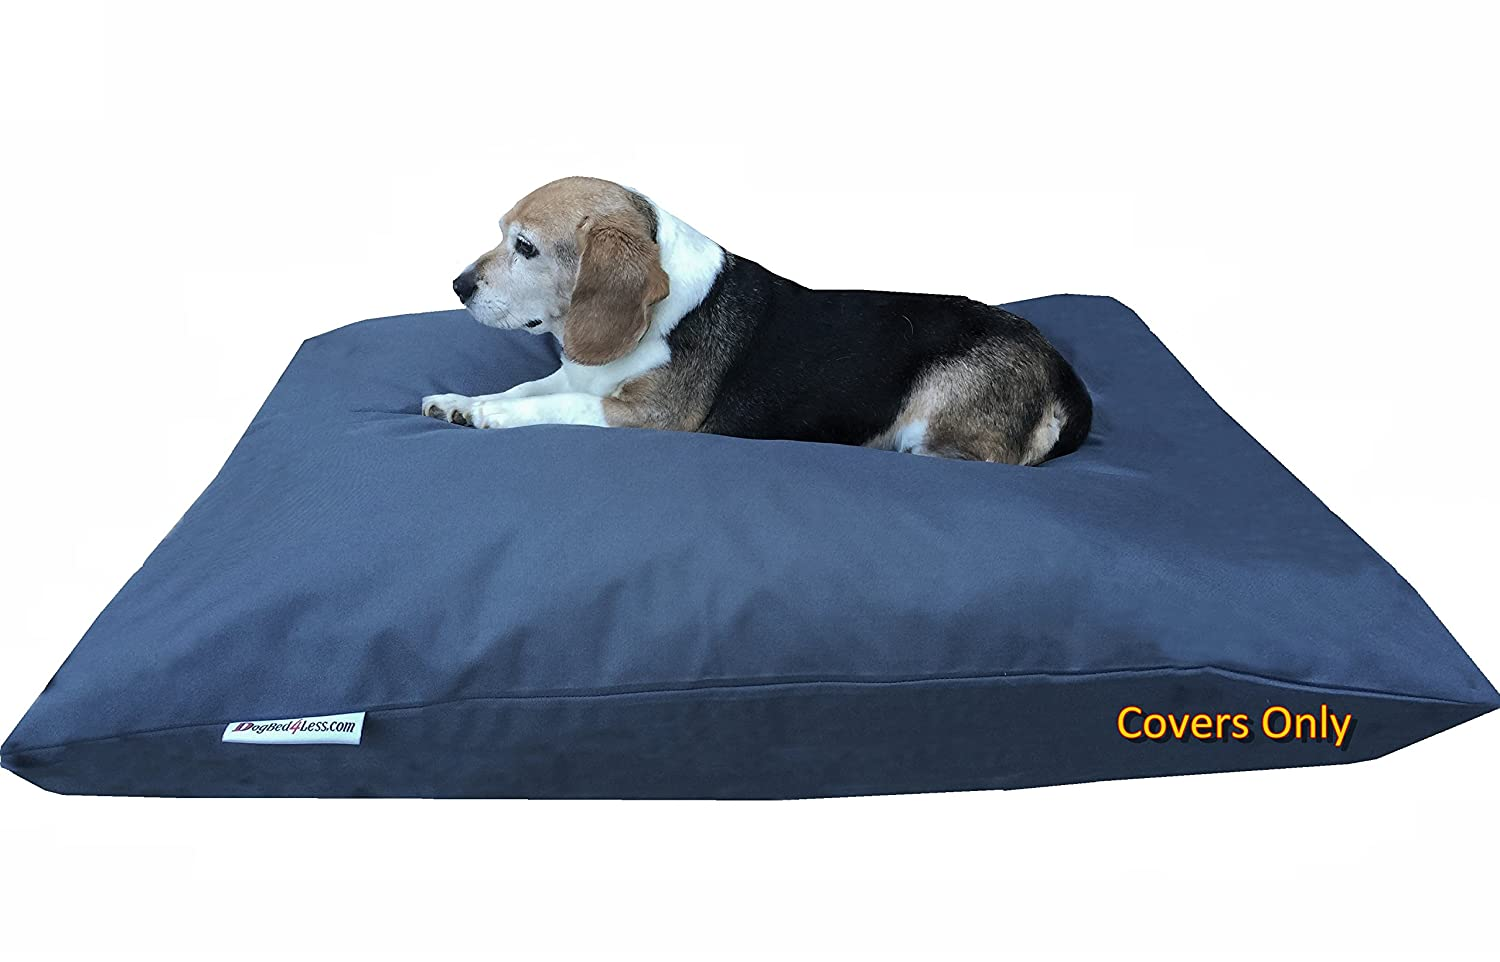 Oxford in Dark Slate 48\ Oxford in Dark Slate 48\ Dogbed4less Do It Yourself DIY Pet Bed Pillow Duvet Oxford Cover + Waterproof Internal case for Dog Cat at Large 48 X29  Dark Slate color Covers only